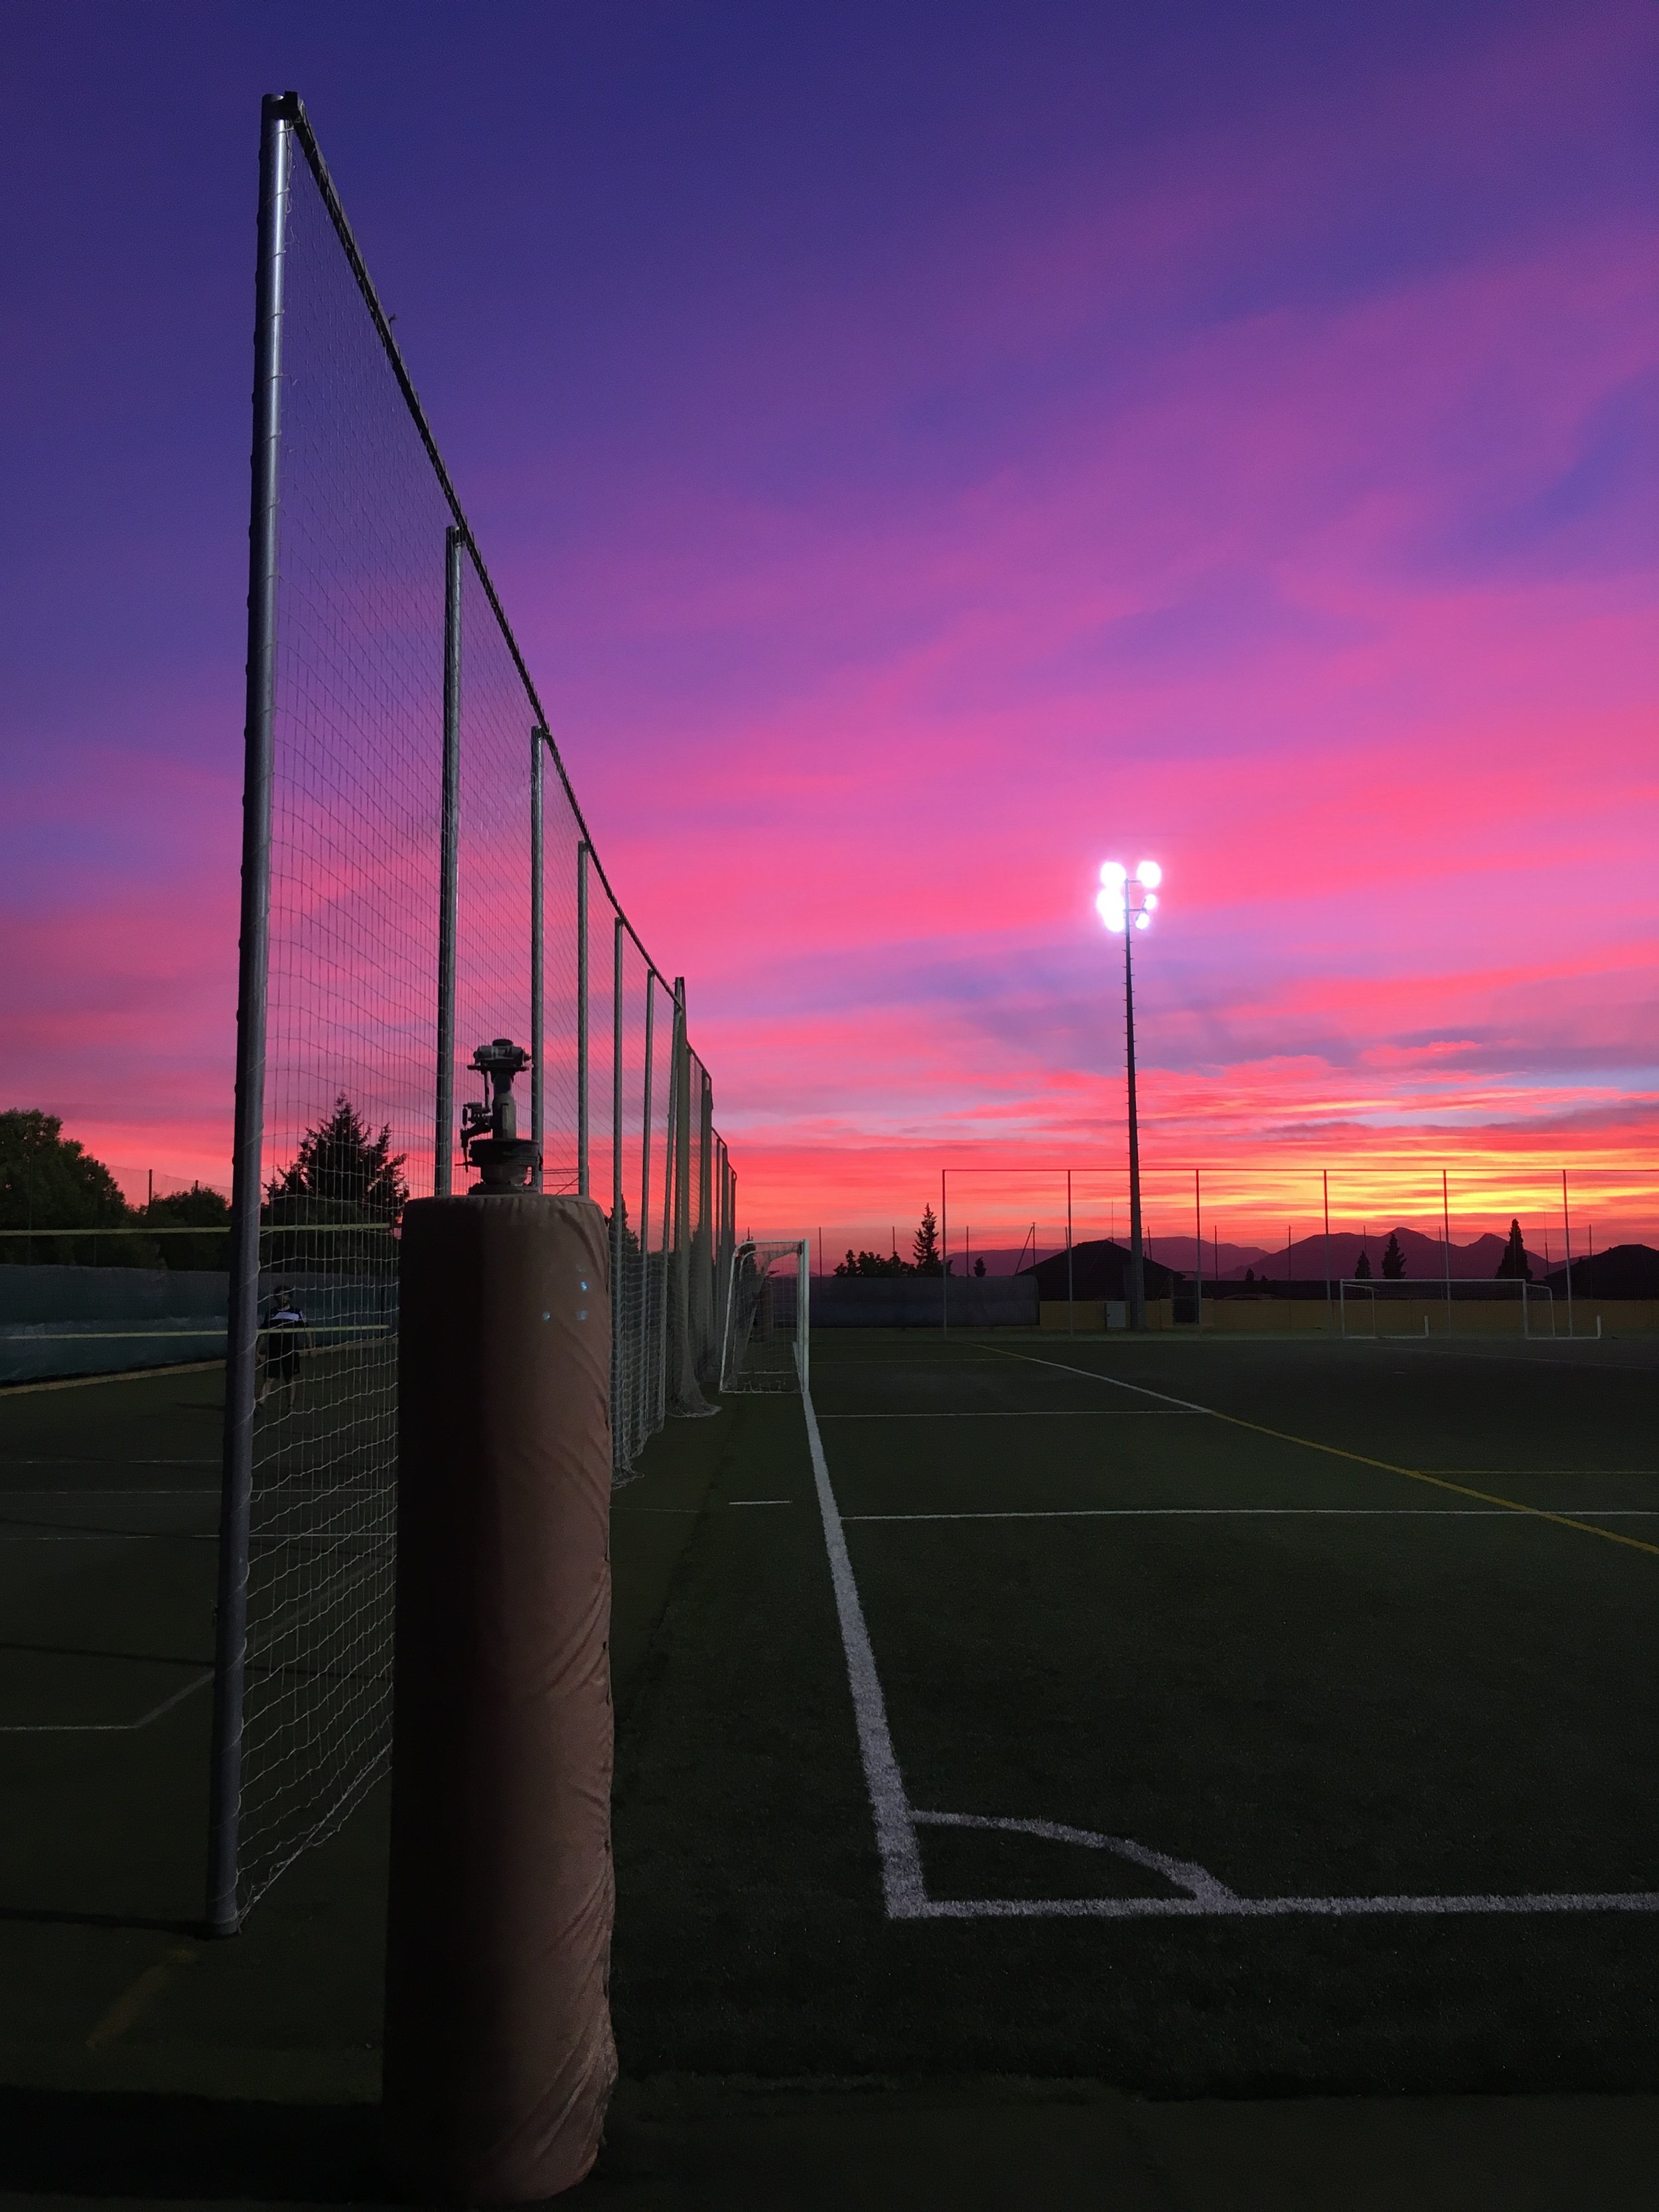 Beautiful sunsets as we about to play soccer are always fun.